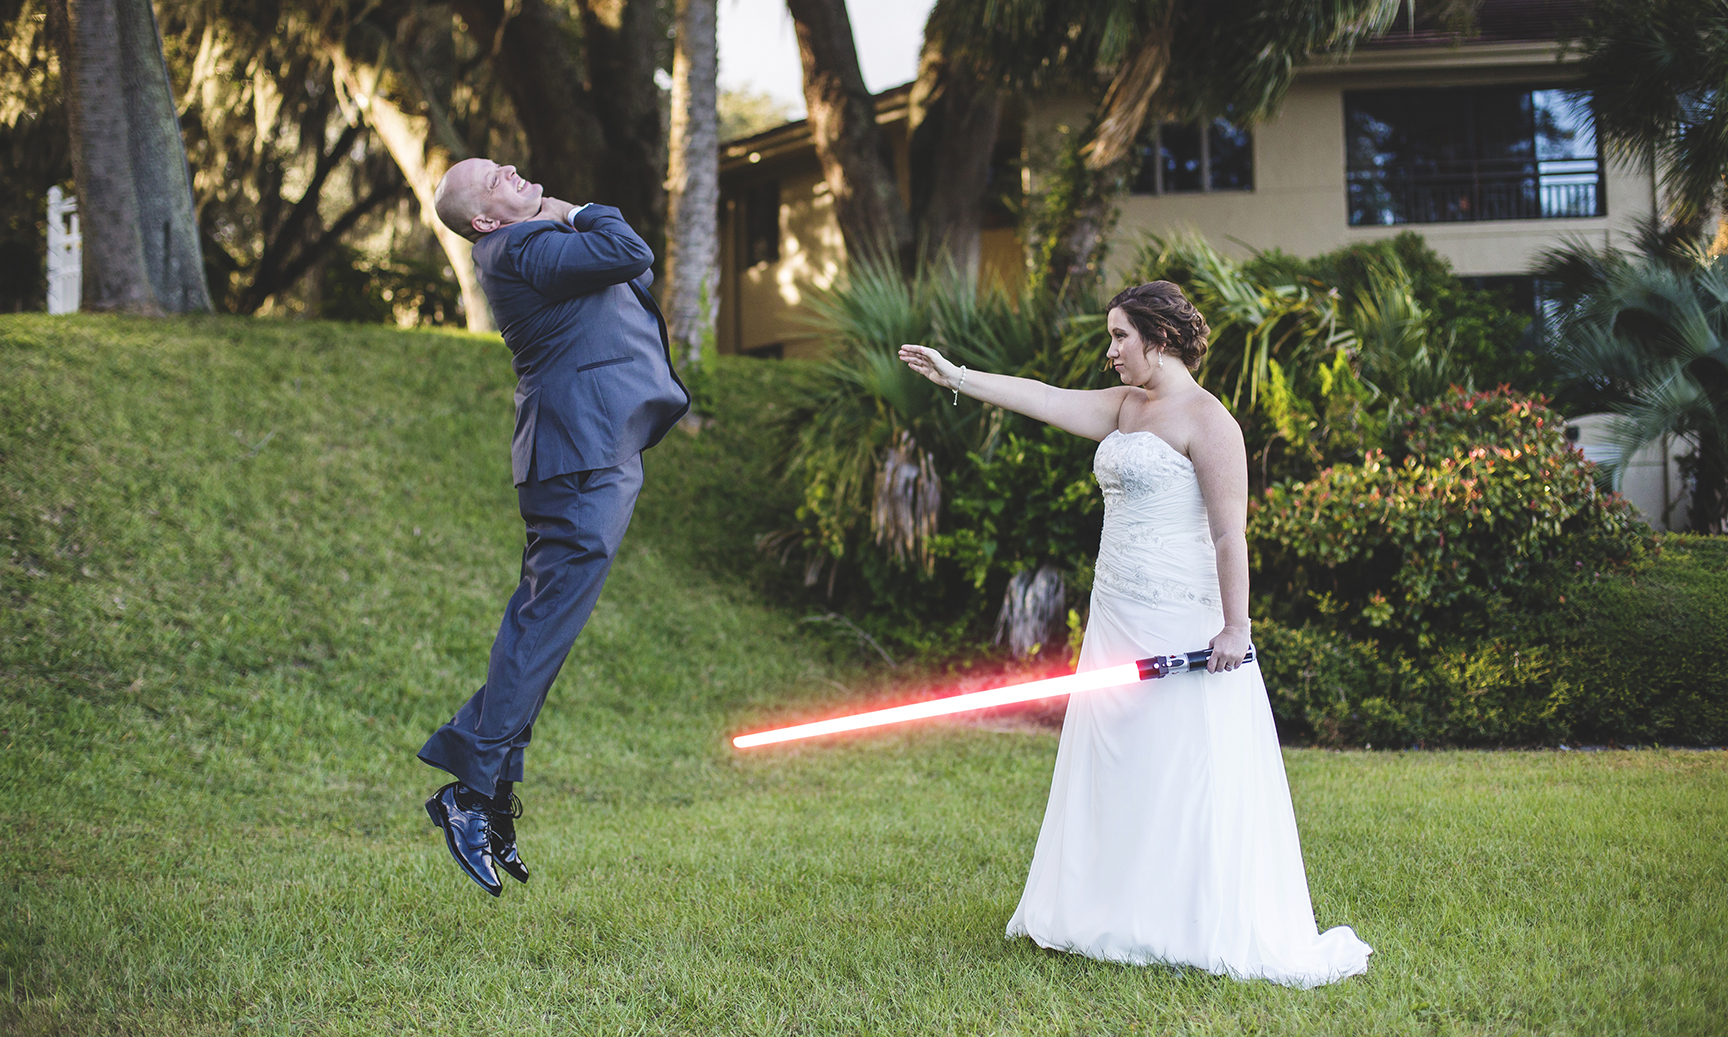 adam-szarmack-star-wars-wedding-jacksonville-photographer-34.jpg